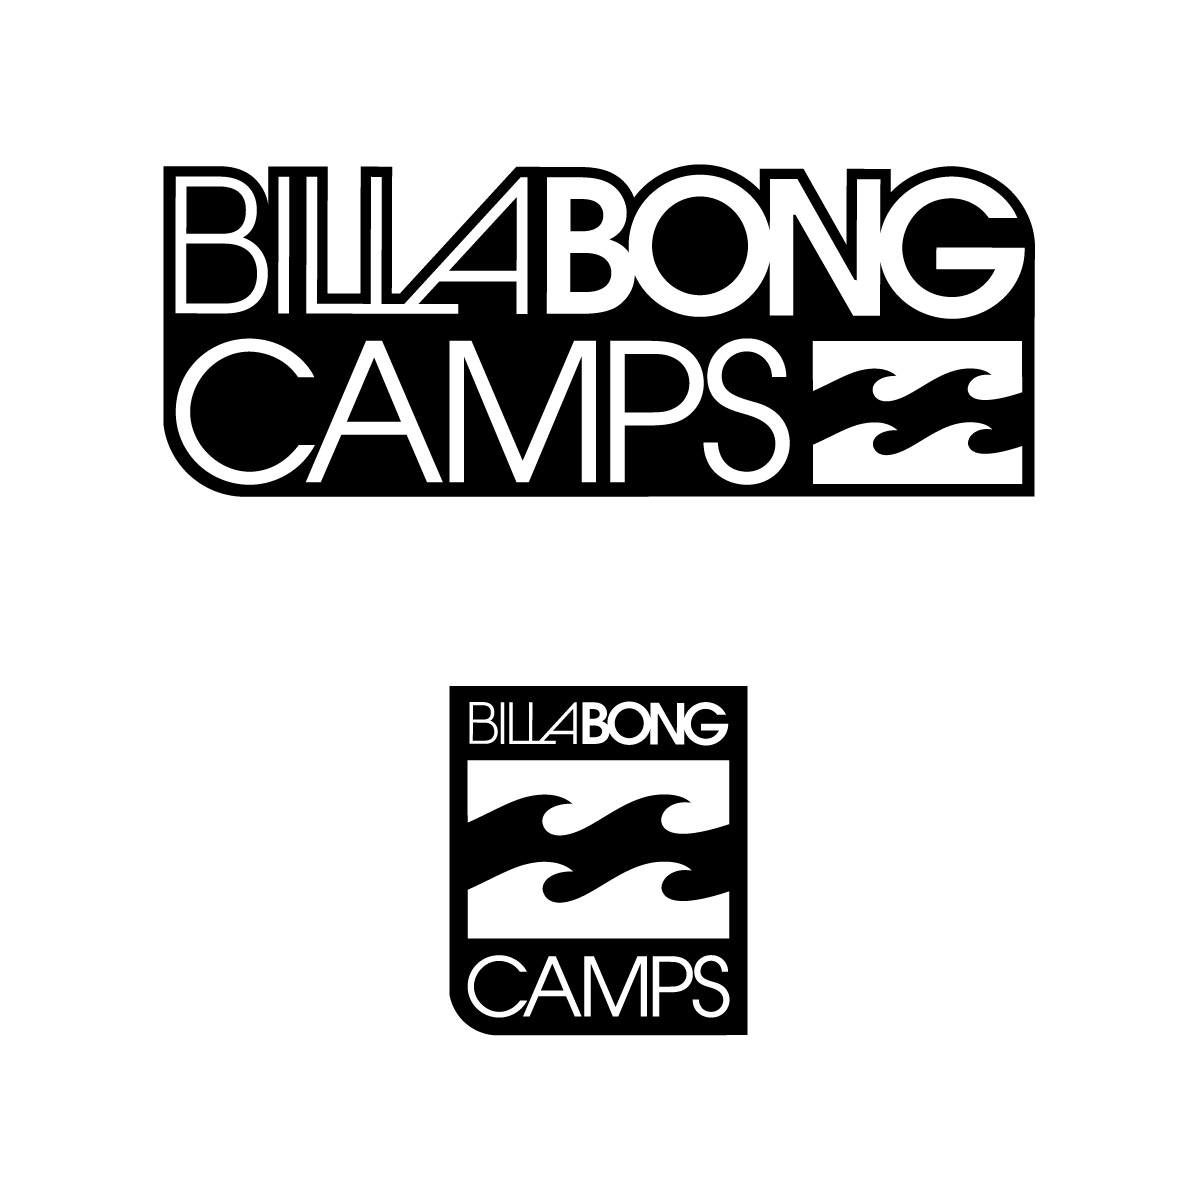 Billabong Camps